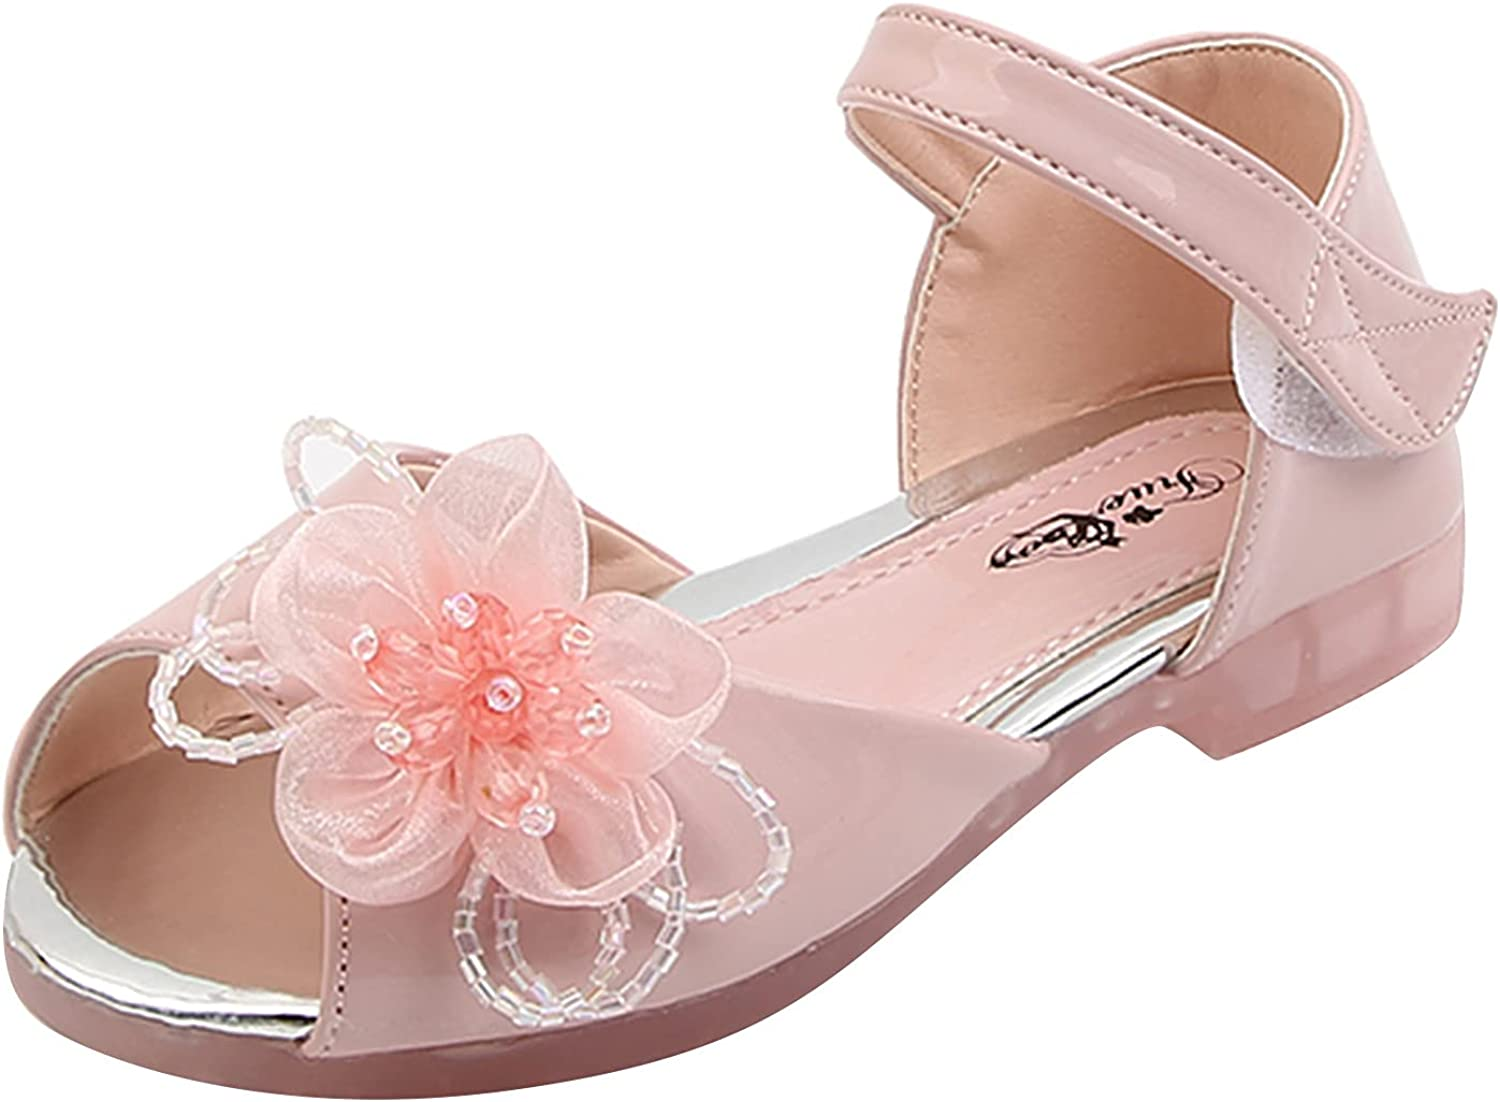 sandals for toddler girls child fish mouth pearl big flowers princess sandals flat flip flop sandals infant toddler pants clothing simple beautiful breathable summer